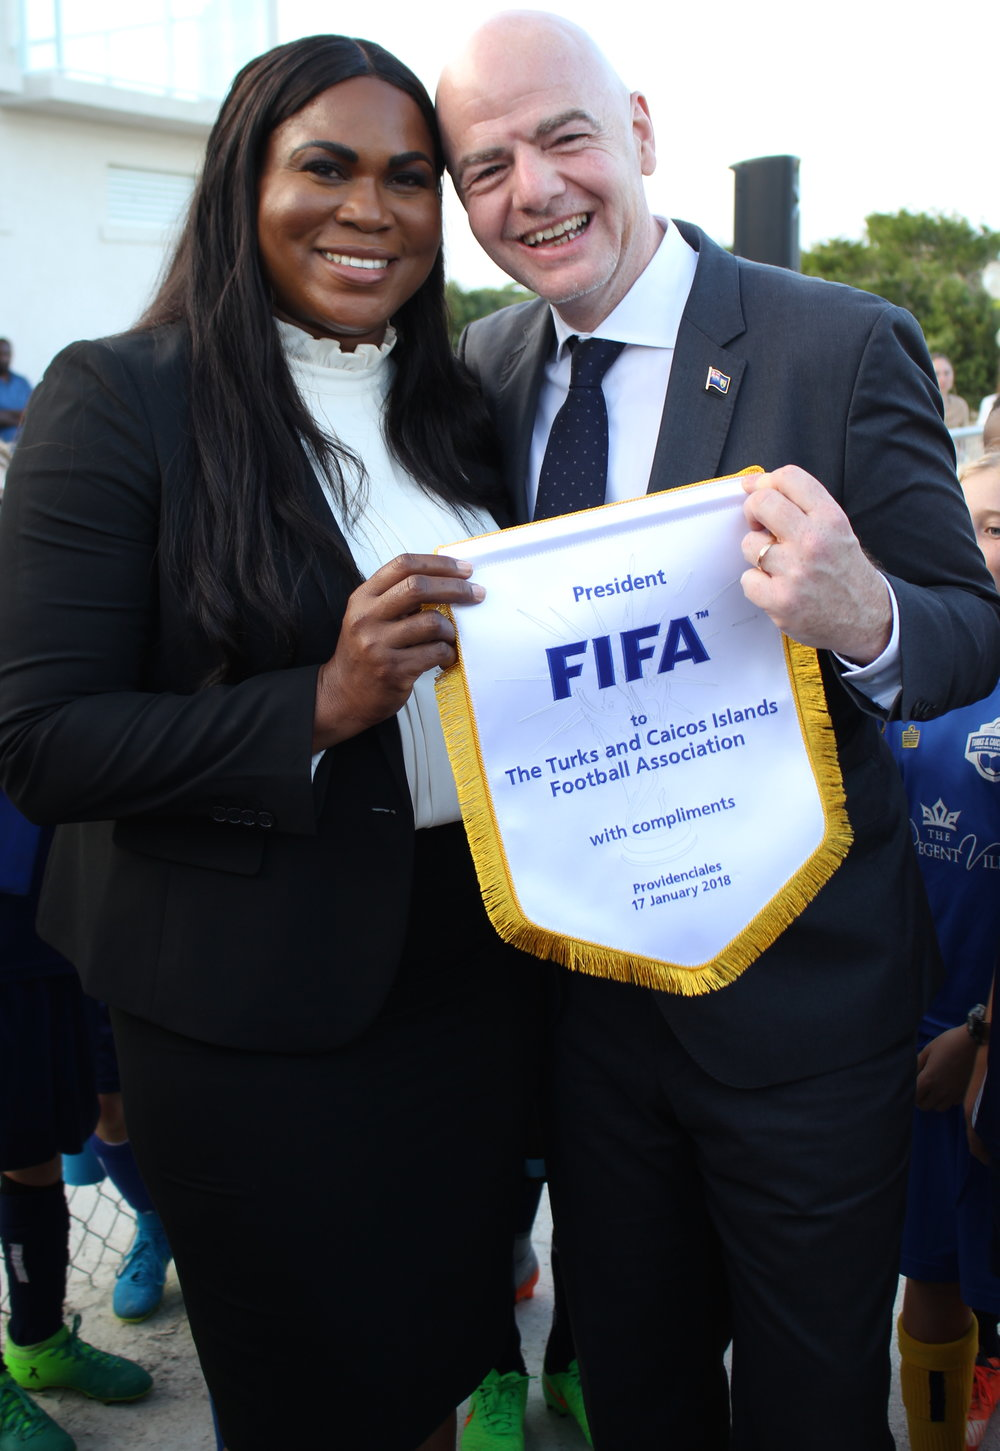 FIFA President Gianni Infantino gifts TCIFA President Sonia Bien-Aime with a FIFA pennant